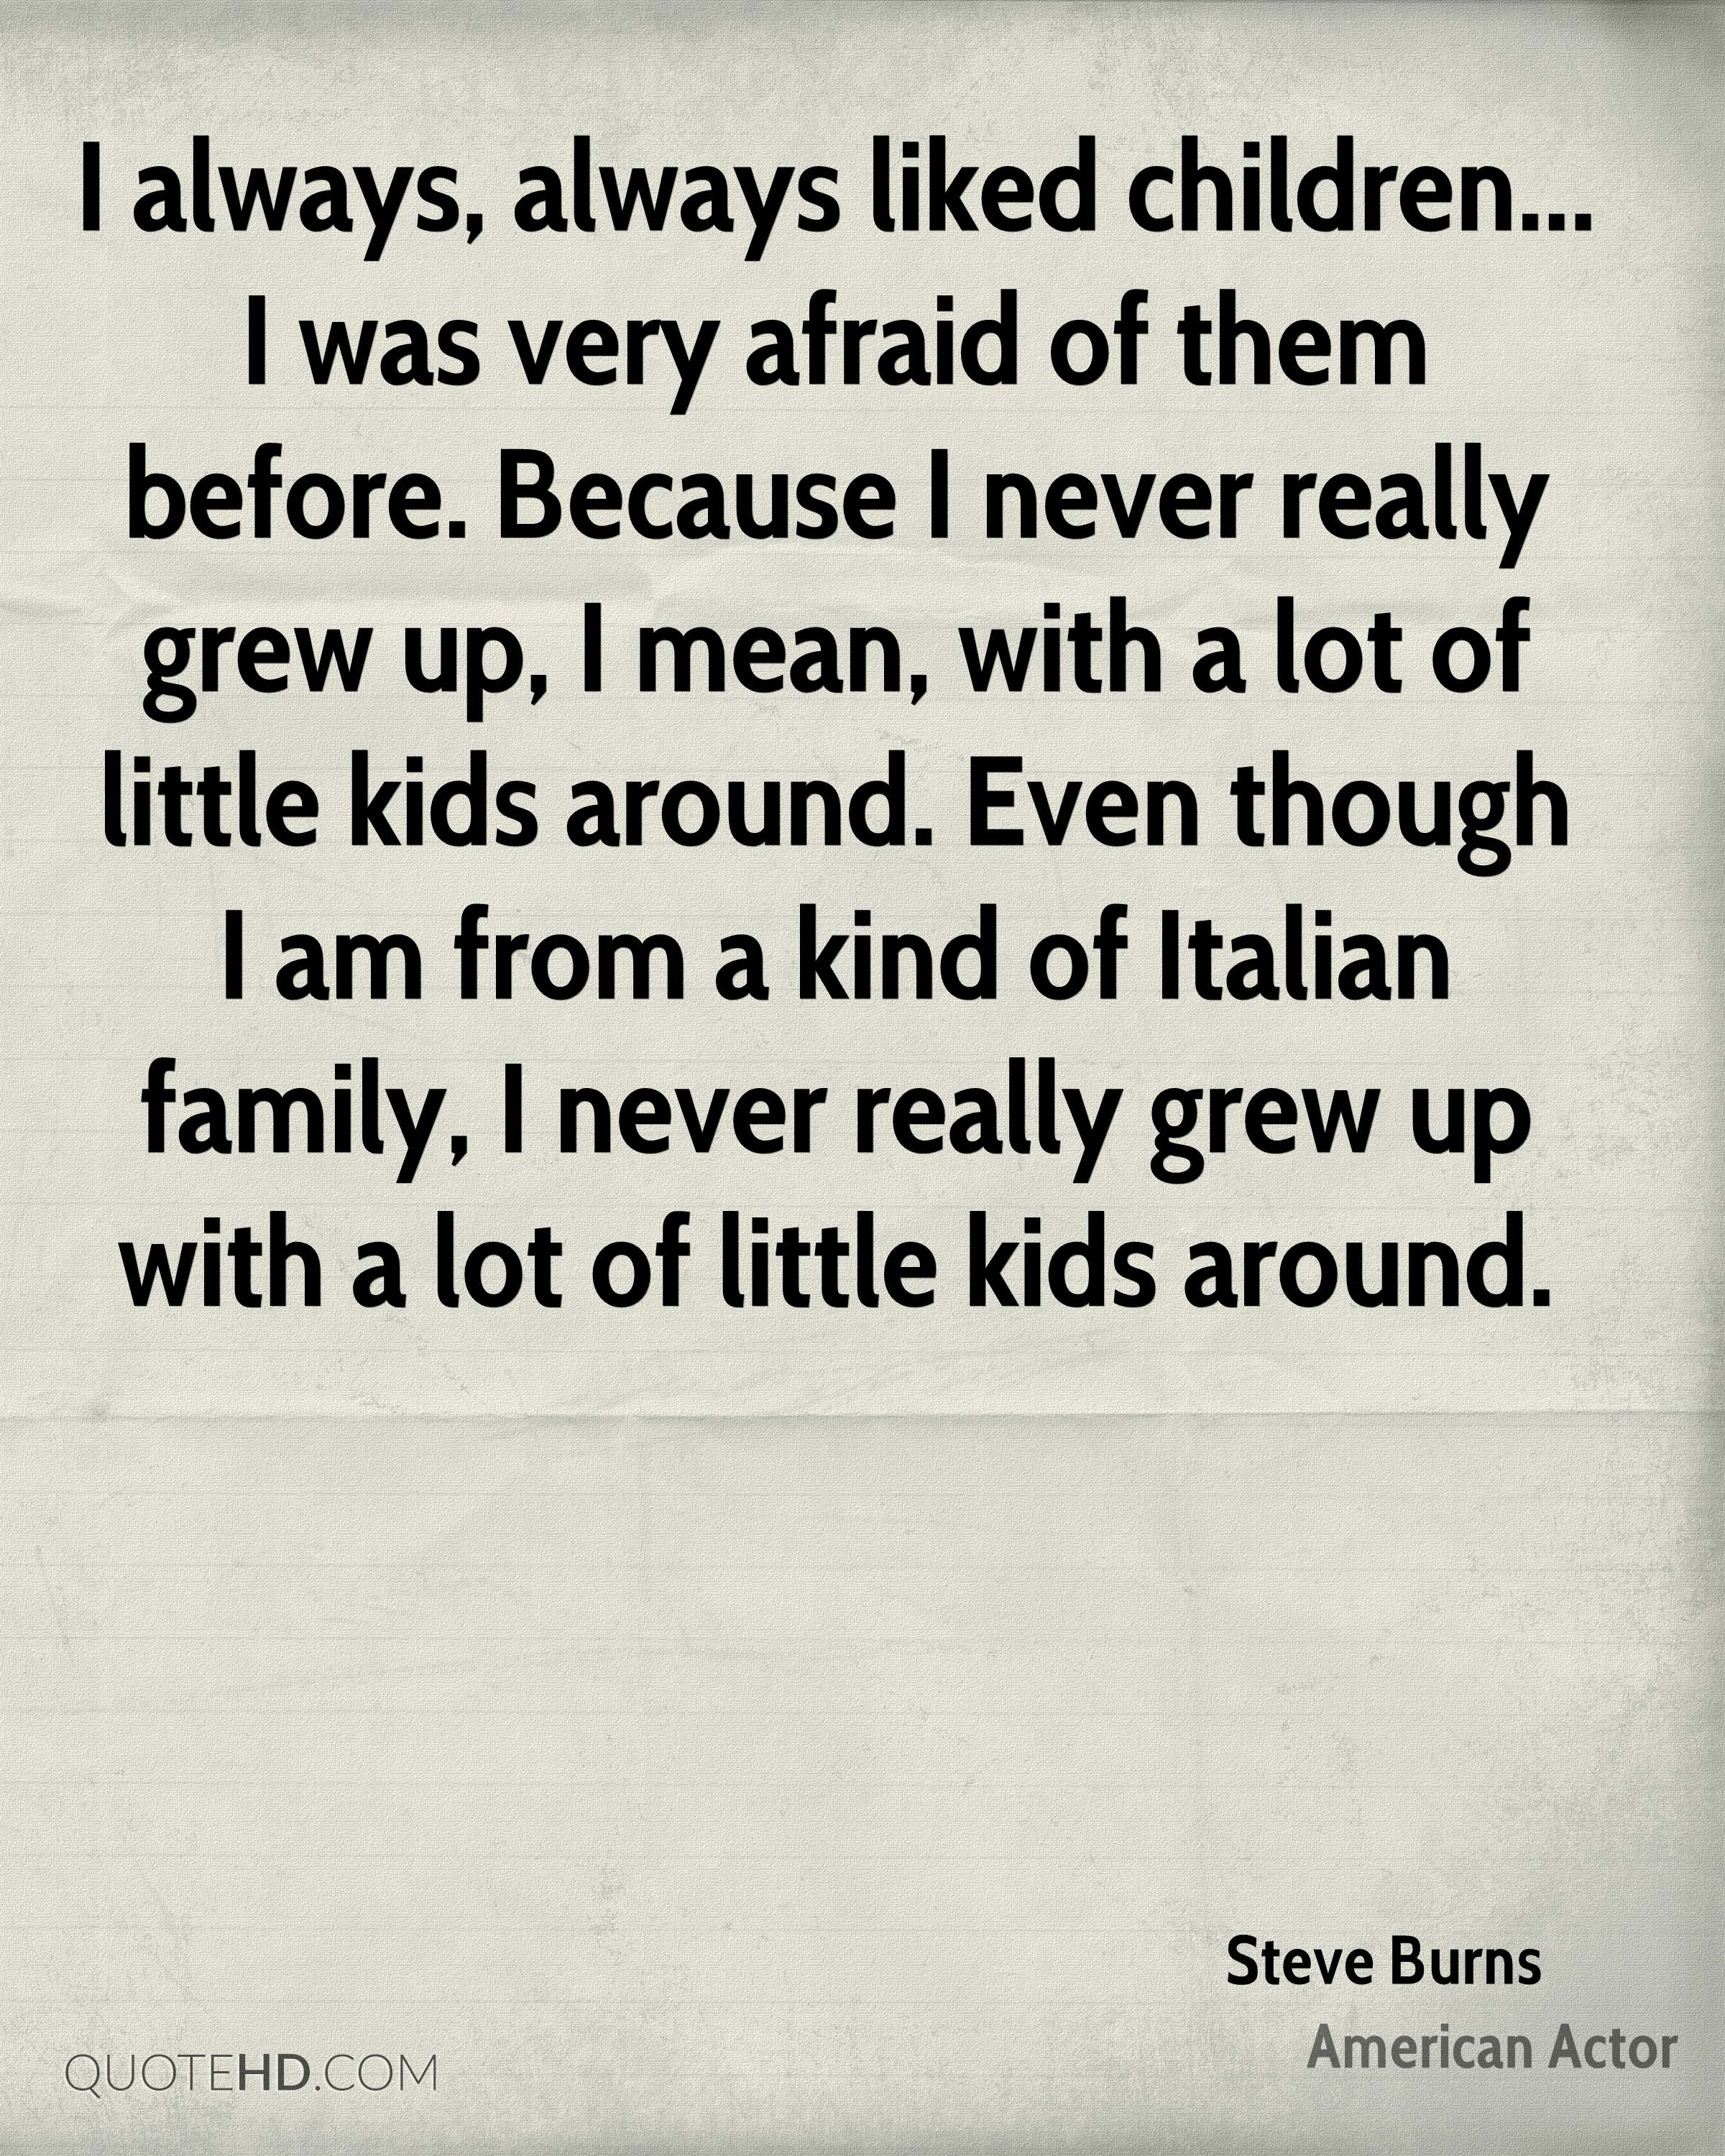 I always, always liked children... I was very afraid of them before. Because I never really grew up, I mean, with a lot of little kids around. Even though I am from a kind of Italian family, I never really grew up with a lot of little kids around.